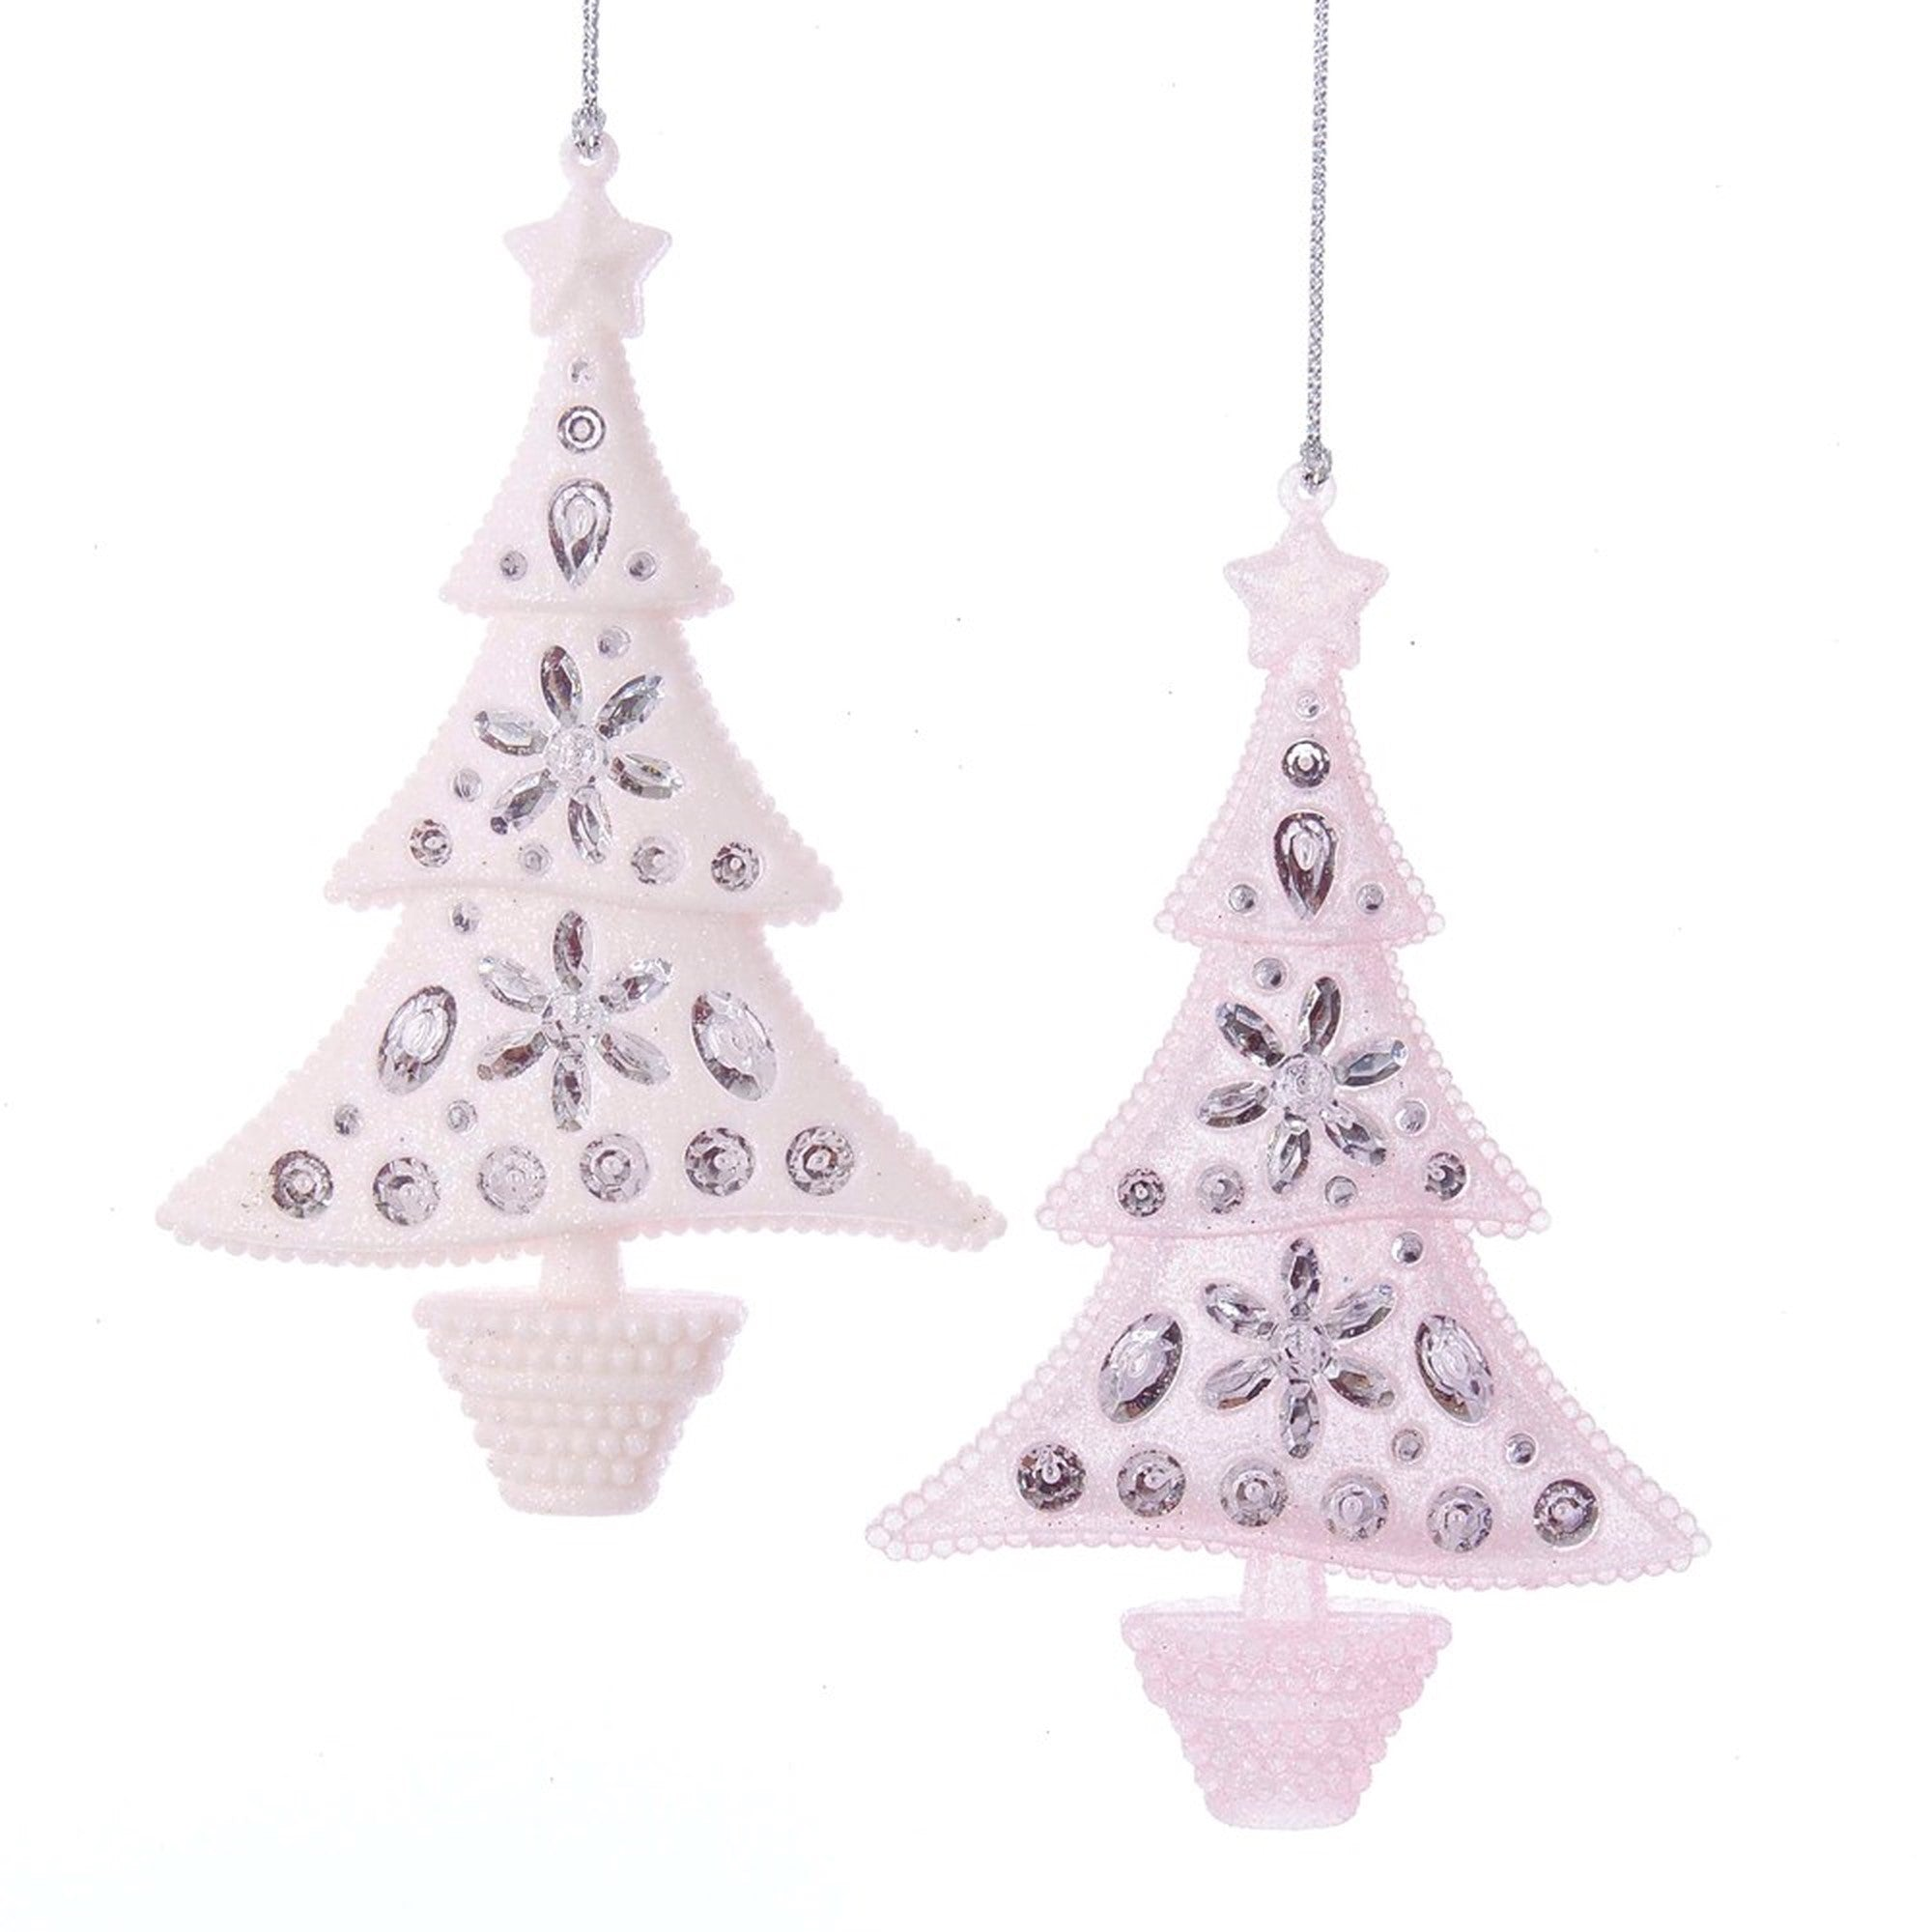 Kurt Adler Pink Glitter Tree Ornament | Putti Christmas